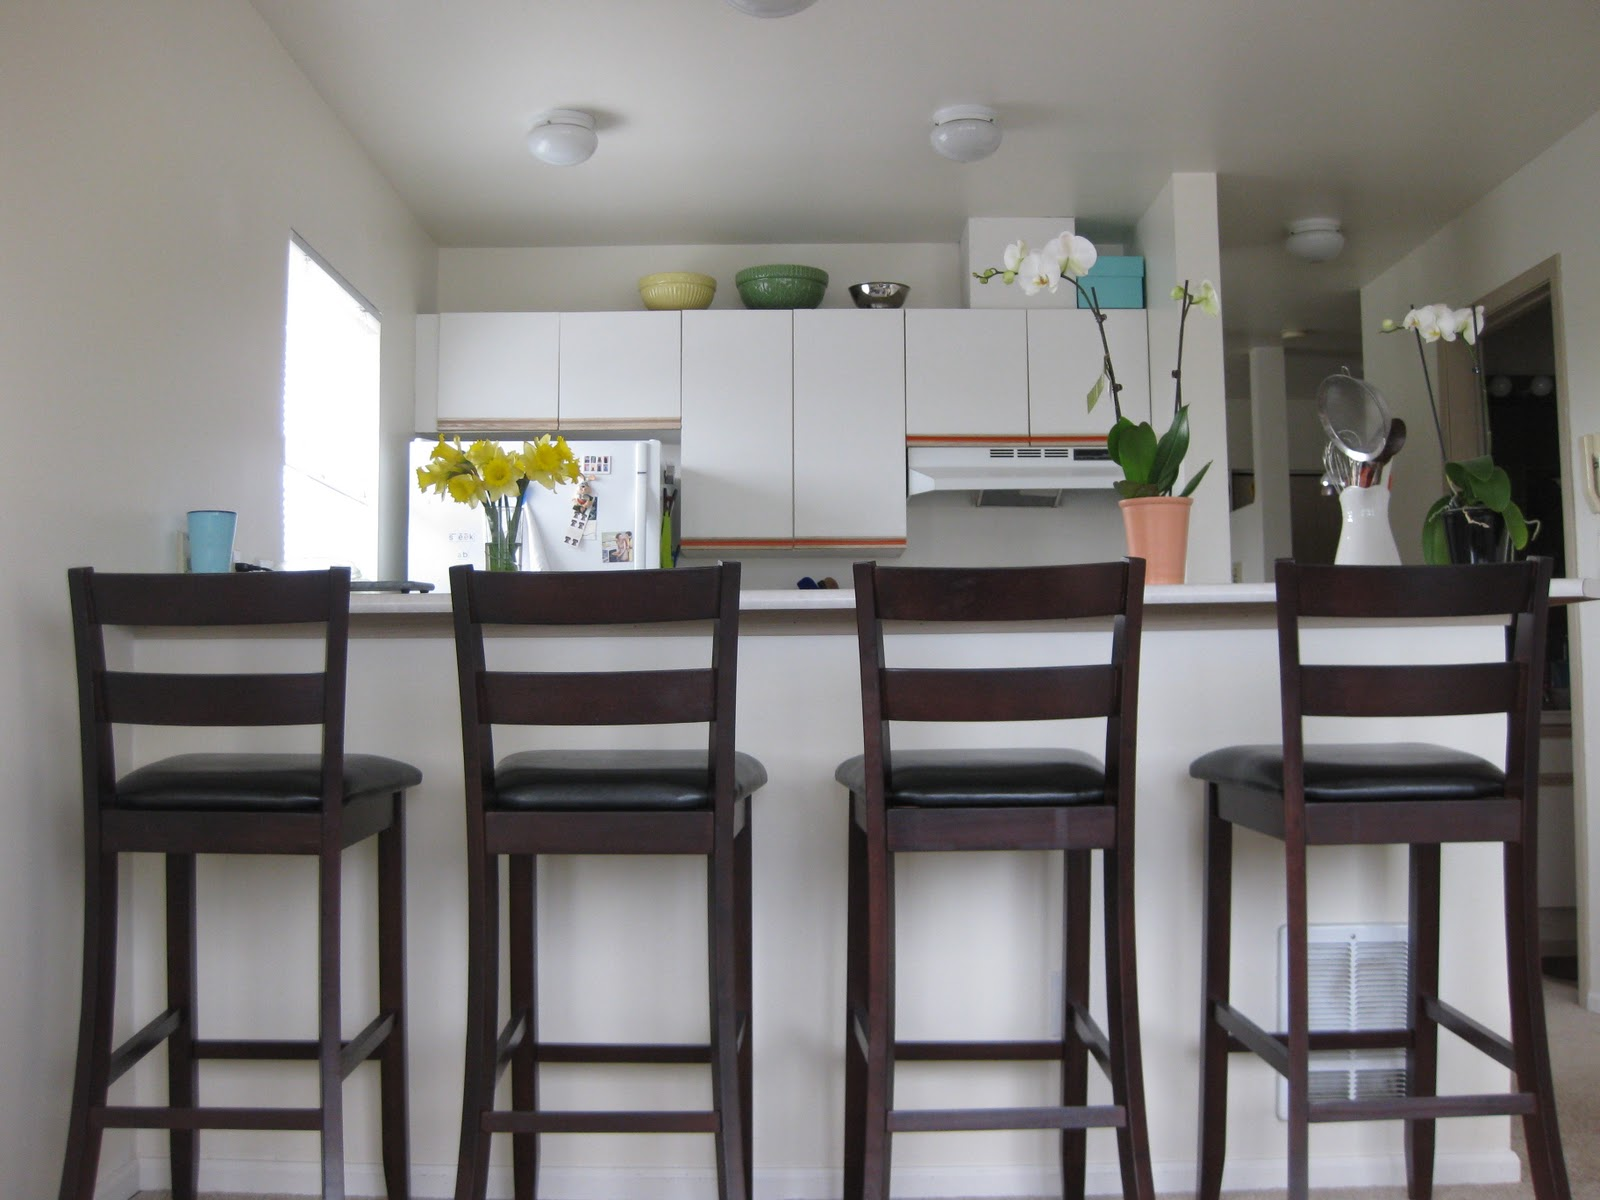 kitchen bar stools free standing sink unit sale sitting in the new snacking